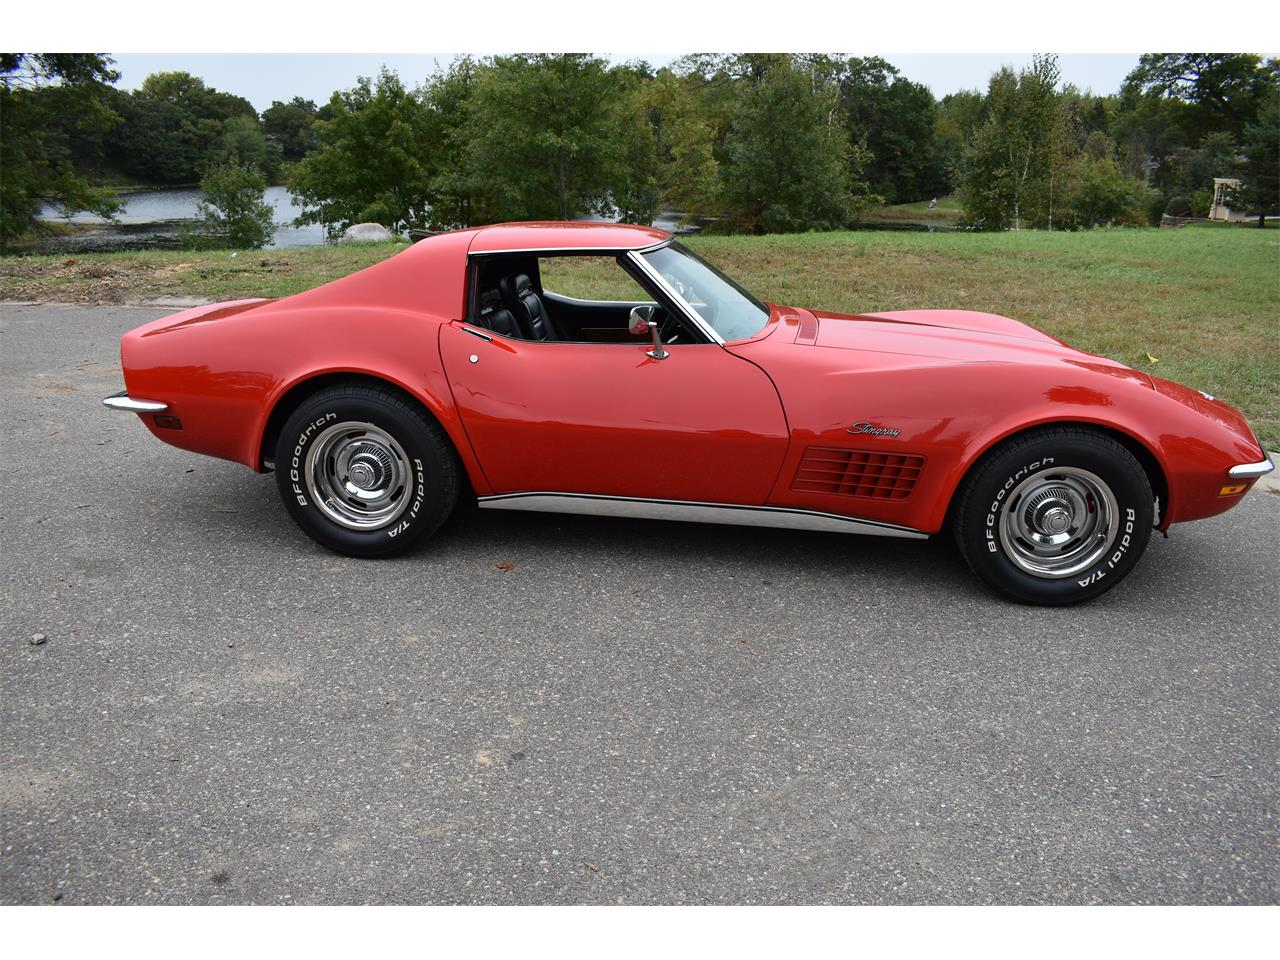 Large Picture of 1972 Corvette located in Little Falls Minnesota - $27,000.00 Offered by a Private Seller - OMCE